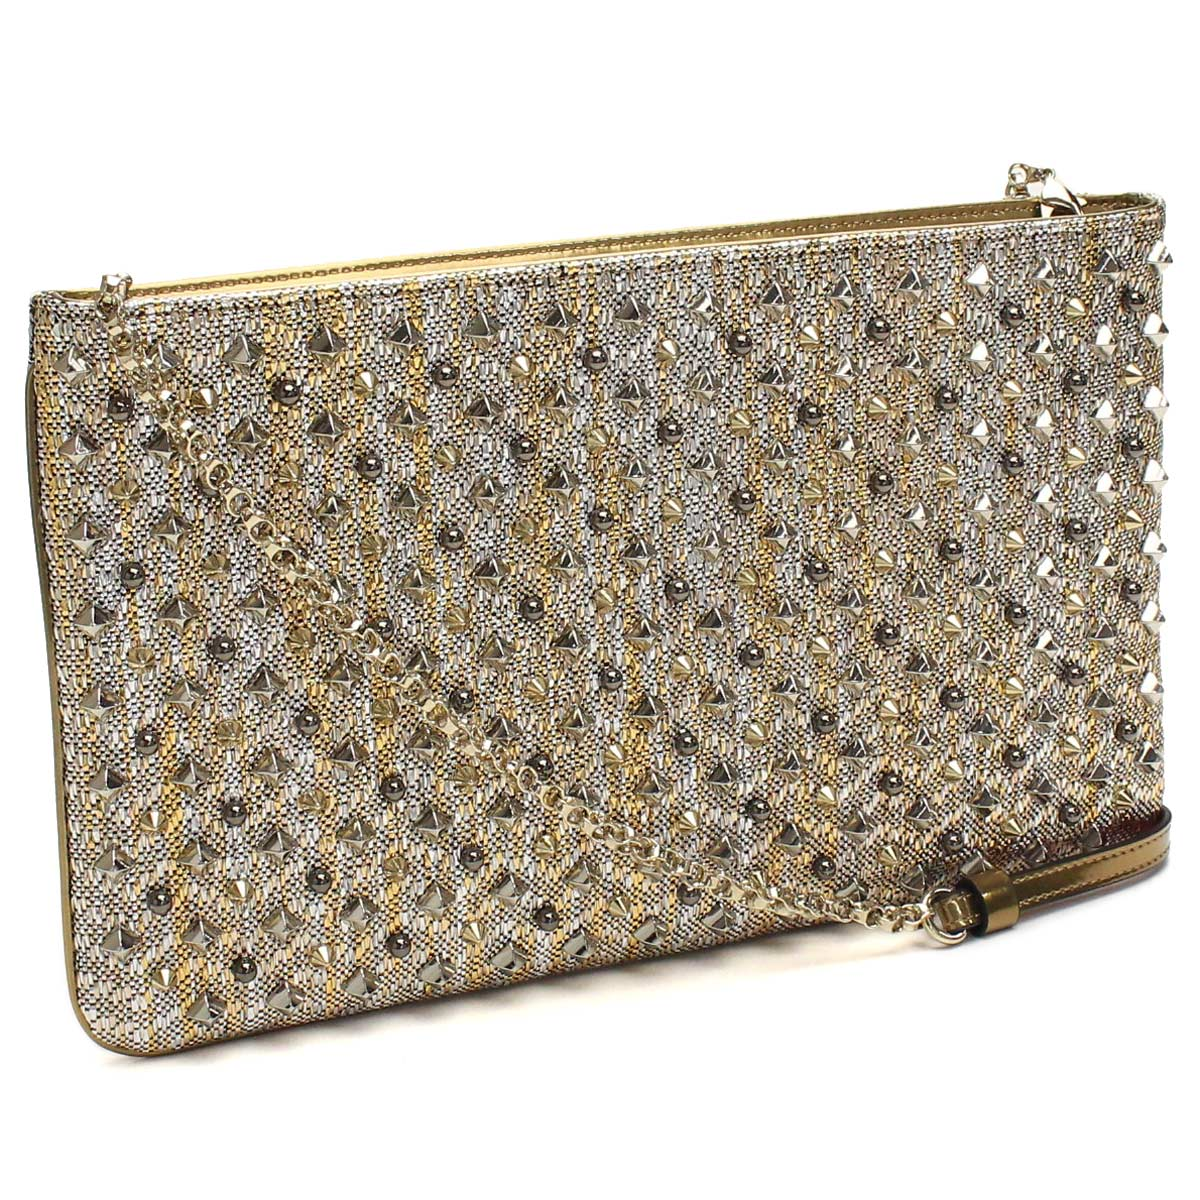 eea8c559079 Christian Louboutin (Christian Louboutin) bag 3165141 M546 METAL GOLD  SV/MULTI gold series multi-color( taxfree/send by EMS/authentic/A brand new  item ...